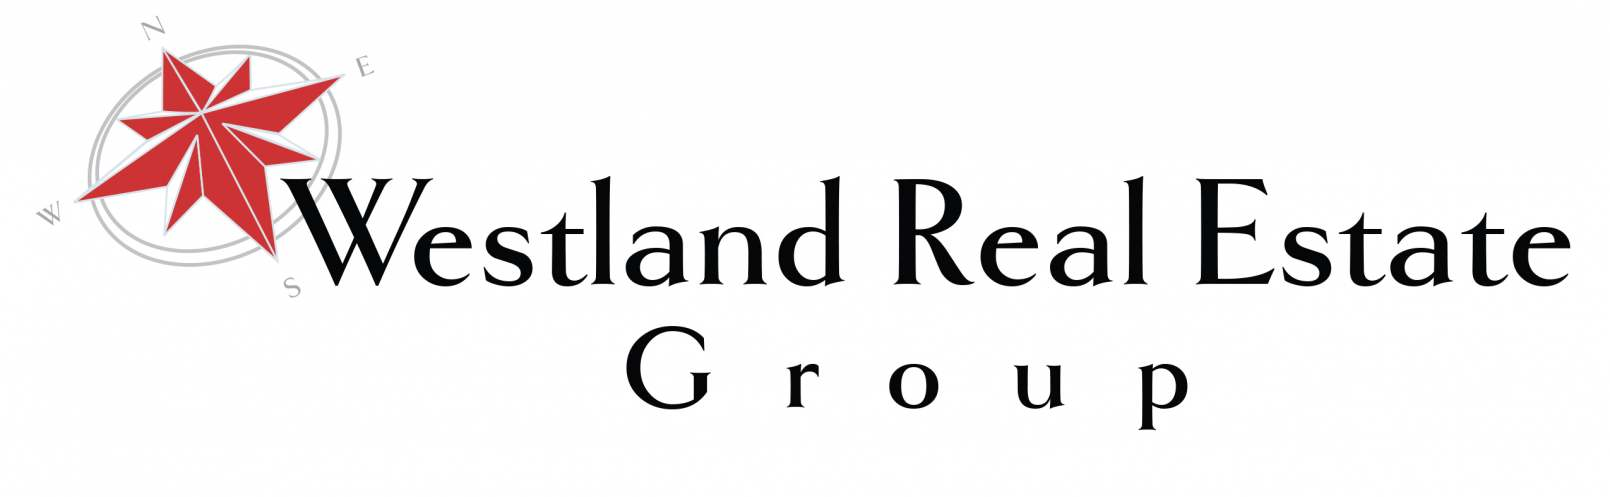 Westland Real Estate Group Logo